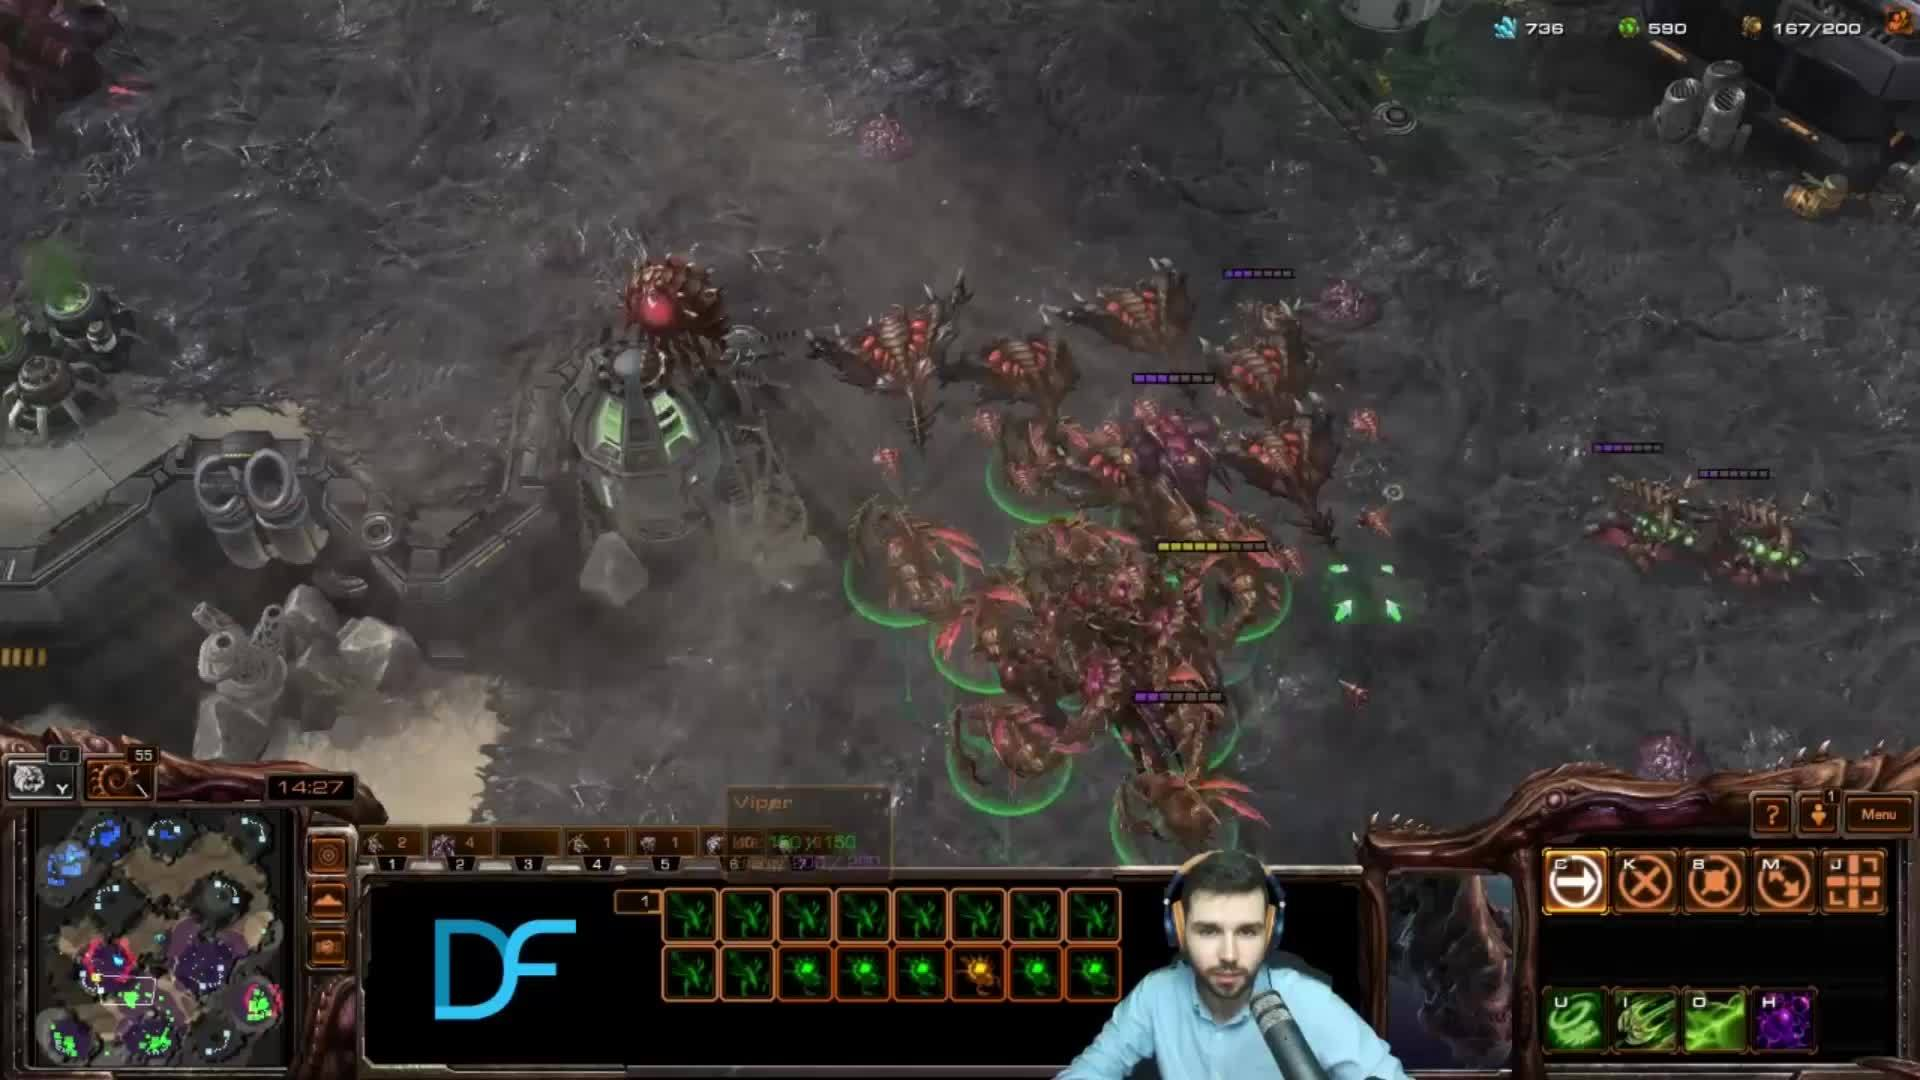 allthingszerg, starcraft, Blowing up Voidray clumps in Legacy feels so satisfying (reddit) GIFs